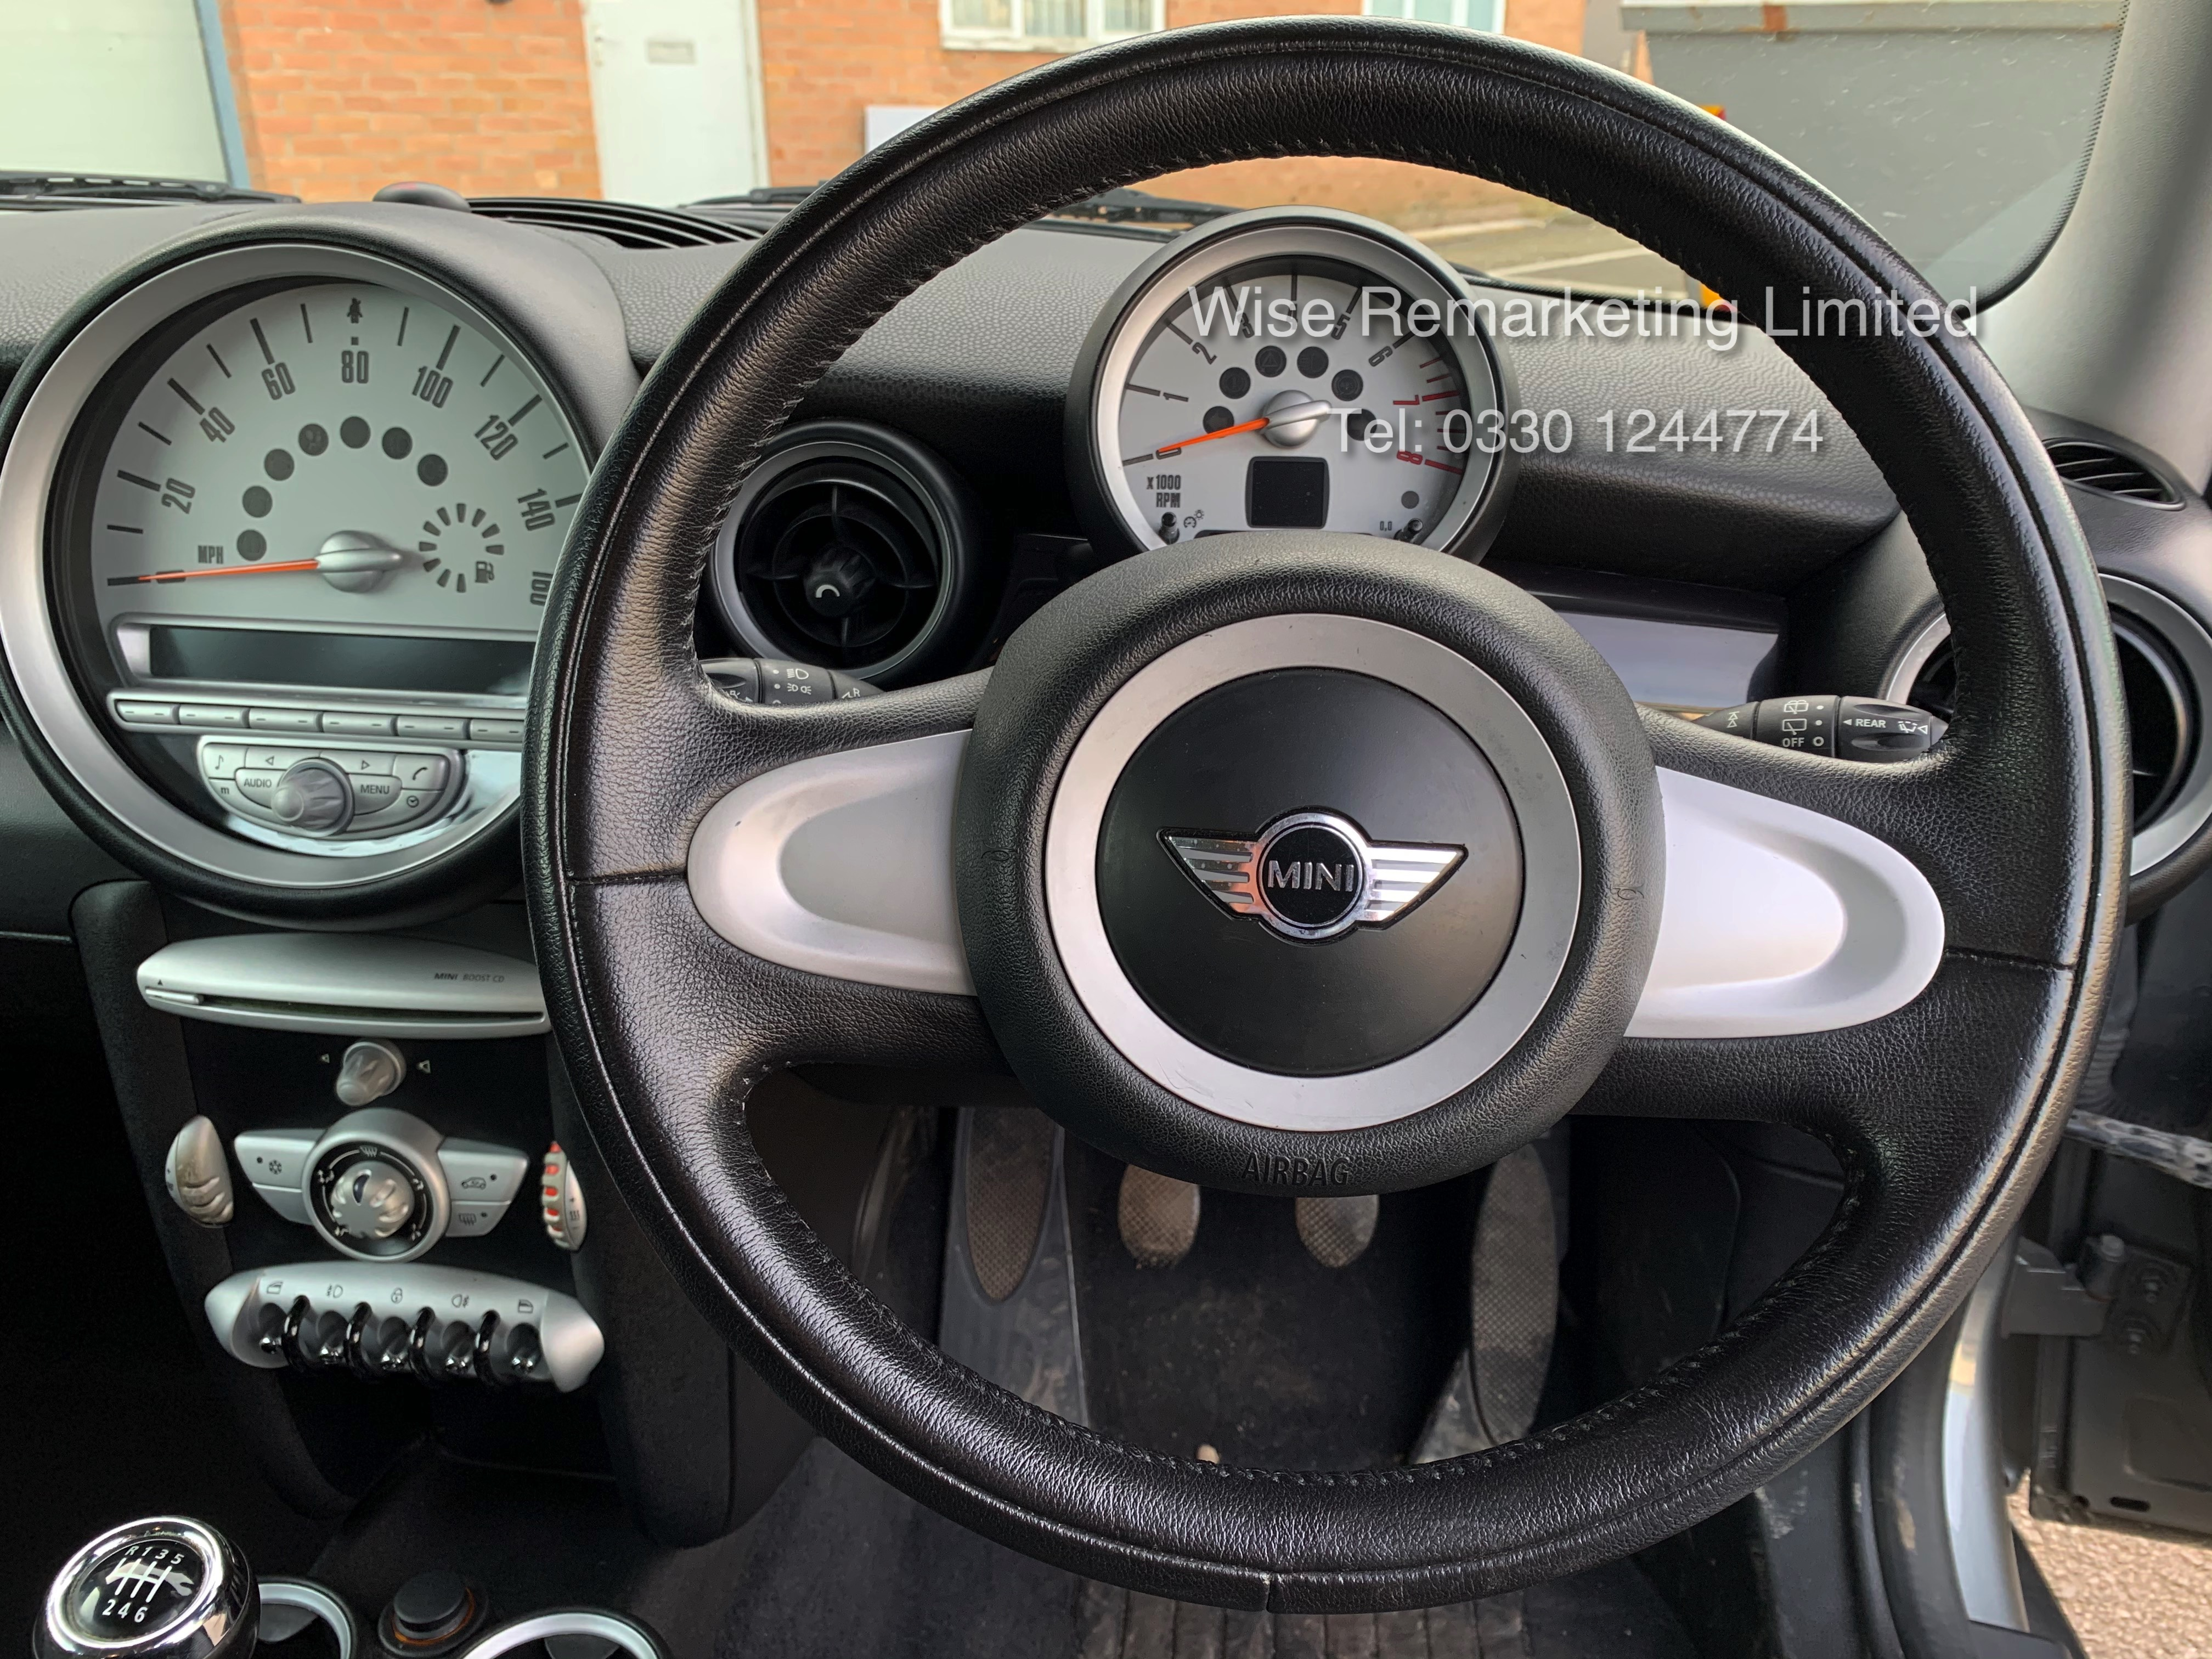 (RESERVE MET) Mini One Graphite 1.4 Petrol - 2010 Model - Service History - 6 Speed - Air Con - - Image 16 of 19